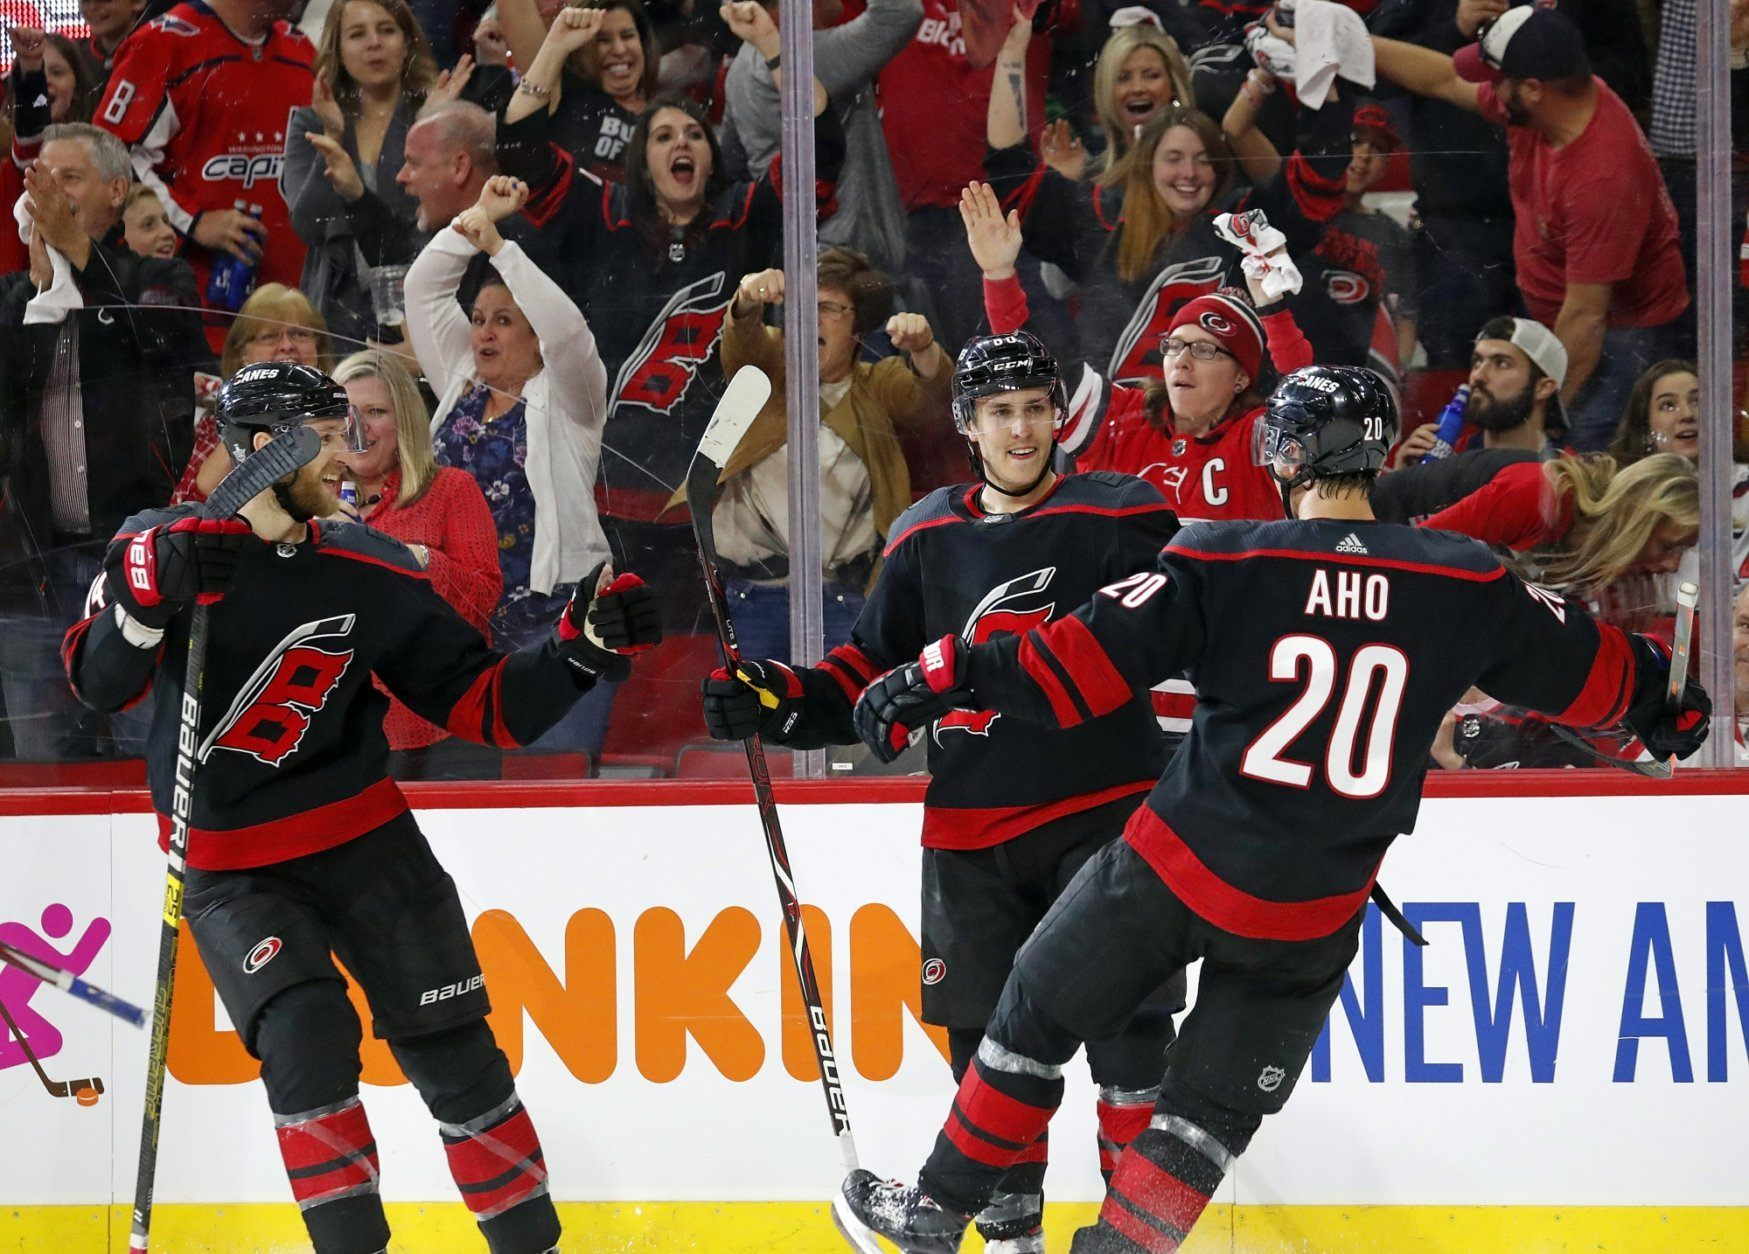 Carolina Hurricanes' Teuvo Teravainen (86) of Finland, celebrates his goal against the Washington Capitals with teammates Sebastian Aho (20) of Finland, and Jaccob Slavin (74) during the second period of Game 4 of an NHL hockey first-round playoff series in Raleigh, N.C, Thursday, April 18, 2019. The Hurricanes won 2-1 to tie the series at 2-2. (AP Photo/Karl B DeBlaker)